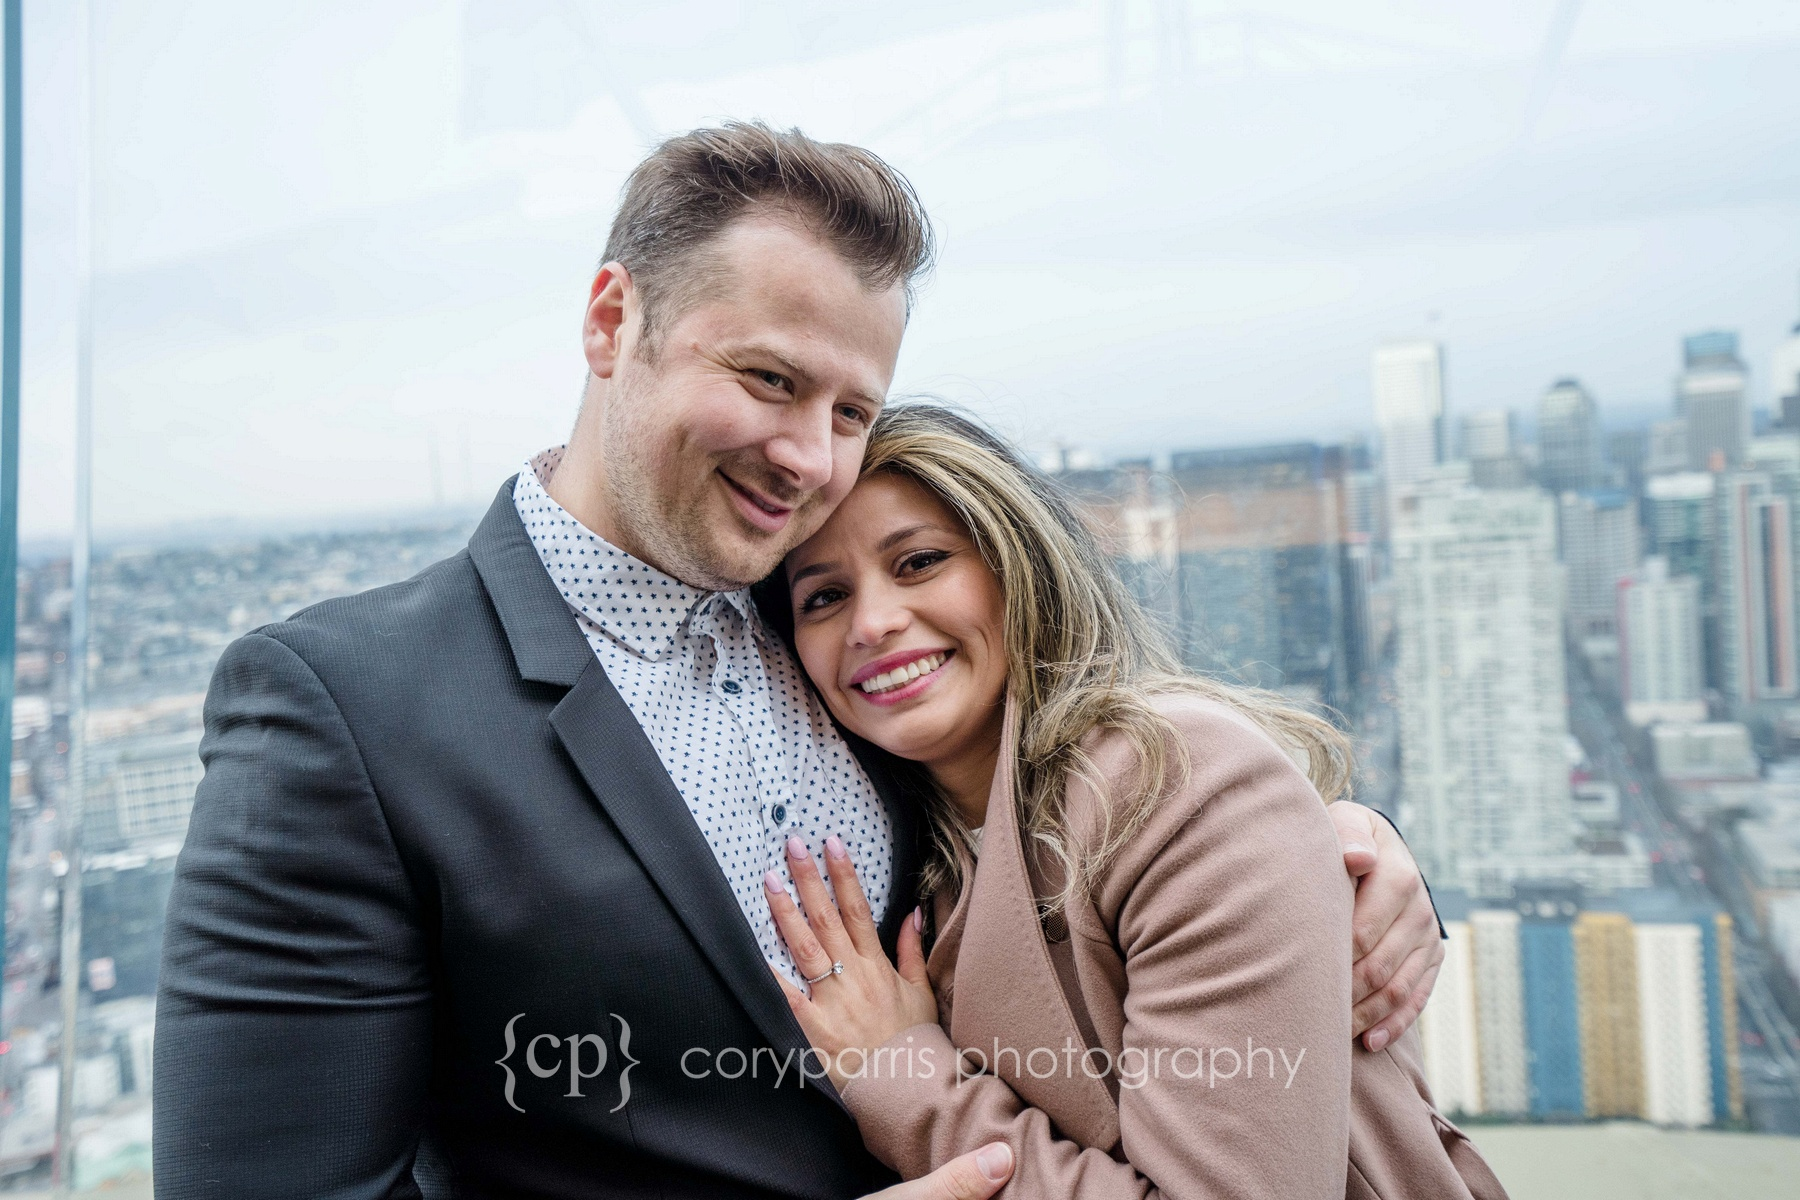 Space-Needle-Wedding-Proposal-0011.jpg